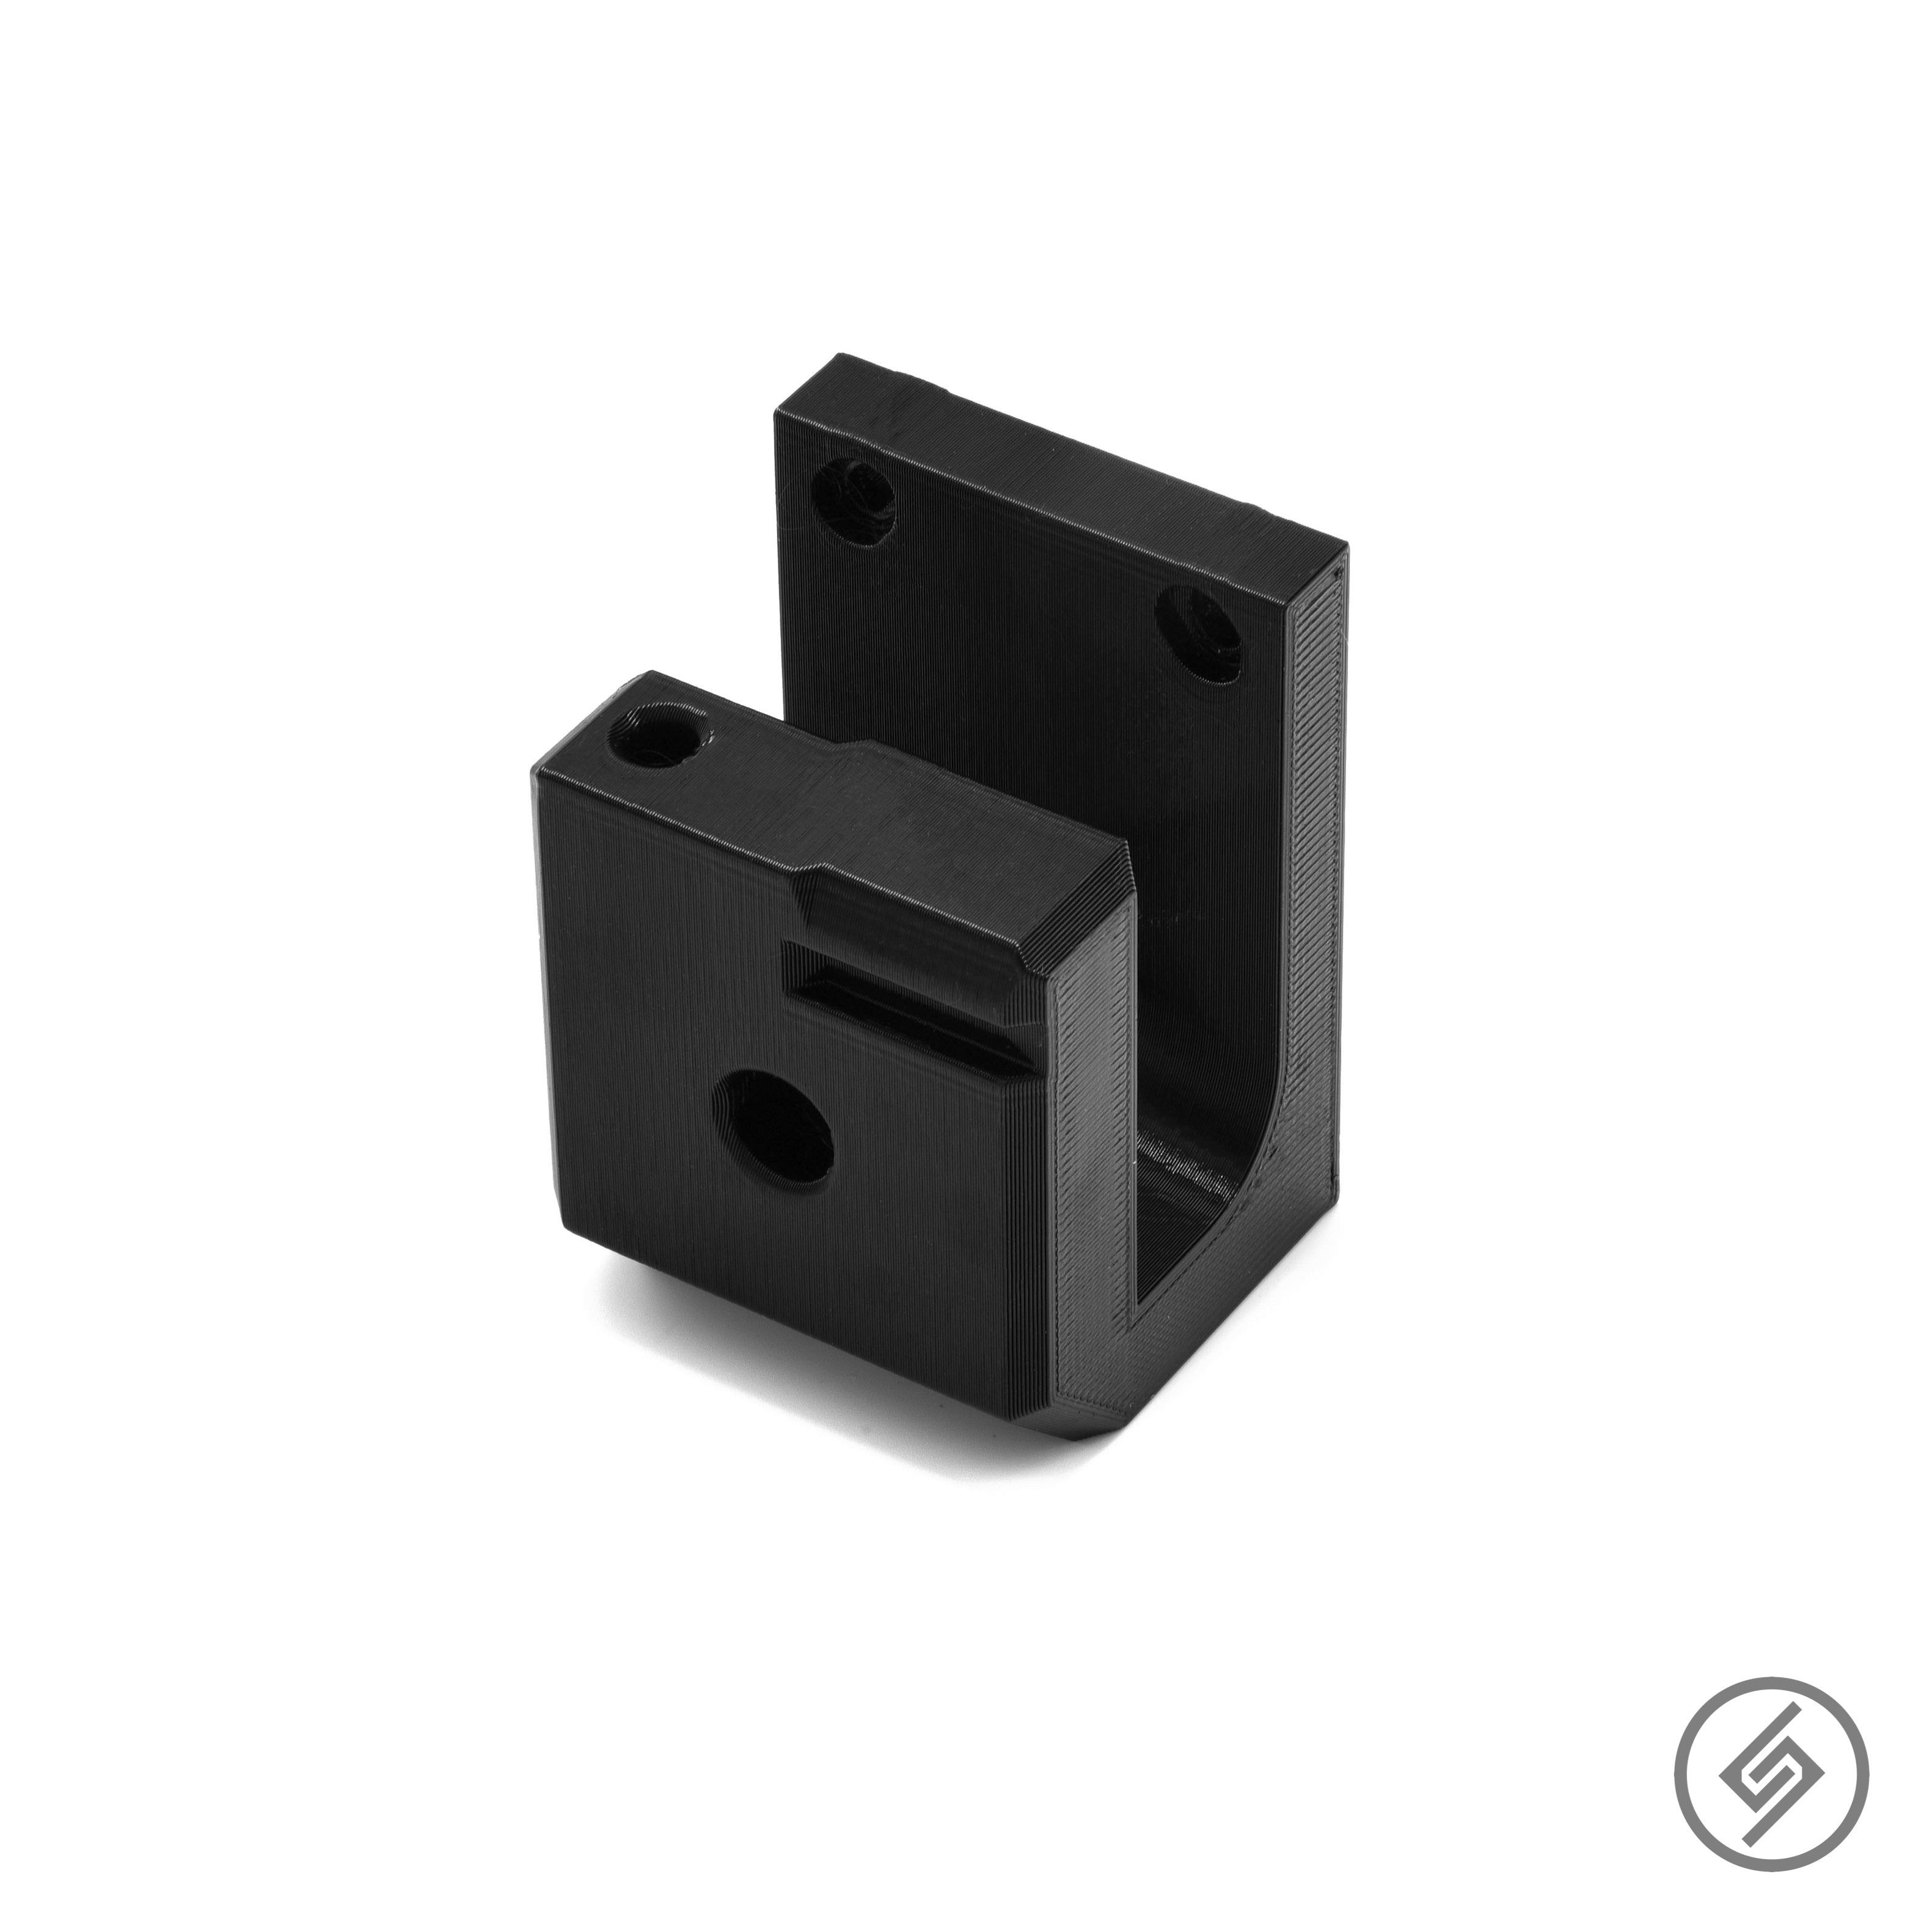 AR-15 Wall Mount, Rifle Display, Spartan Mounts, Product Photo 1